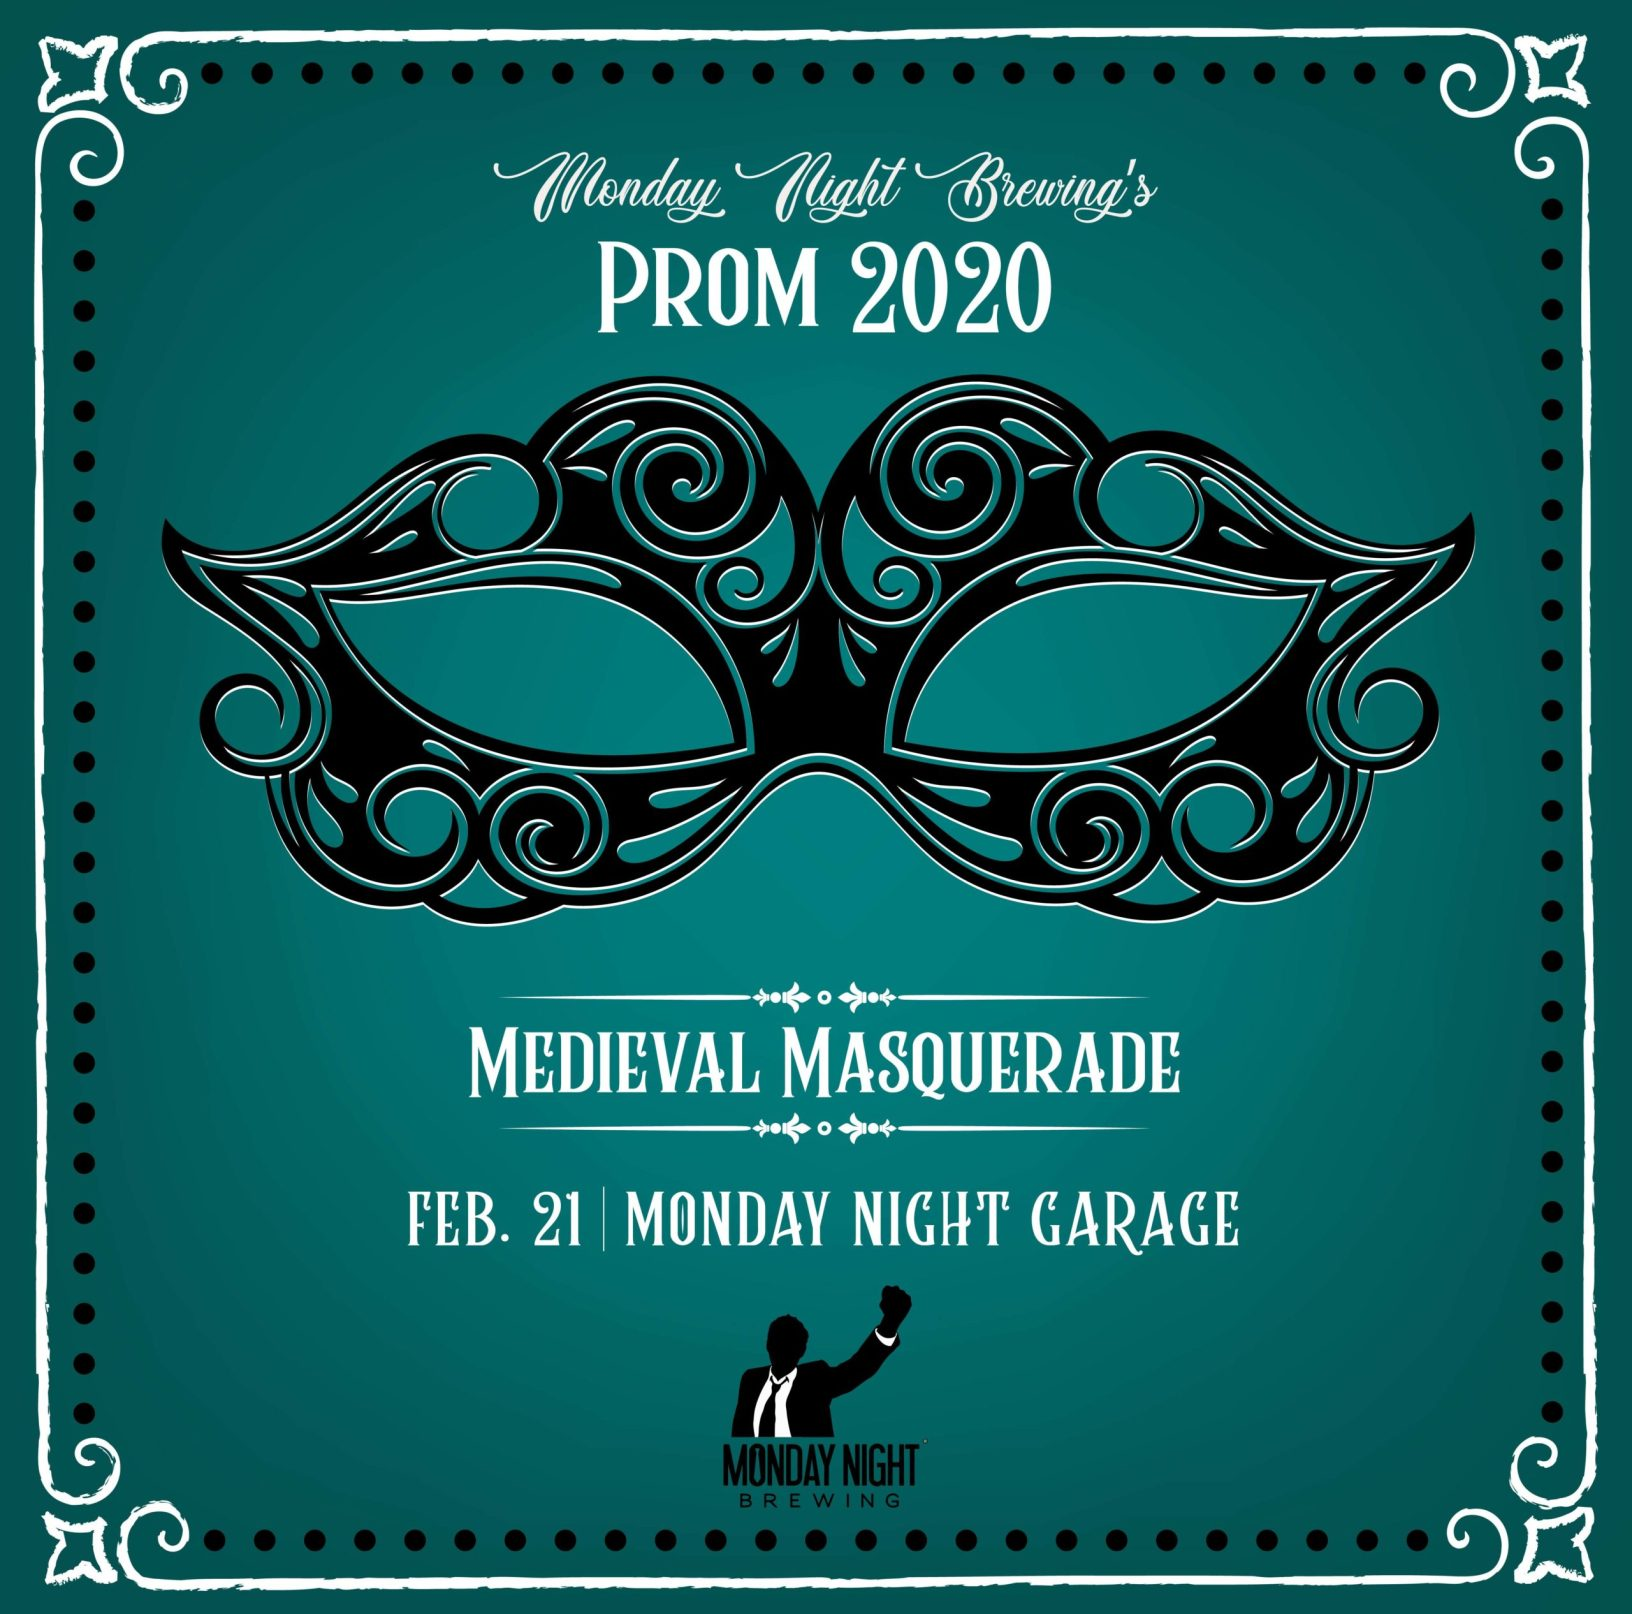 Prom 2020: This Time, No Need To Sneak In the Beer